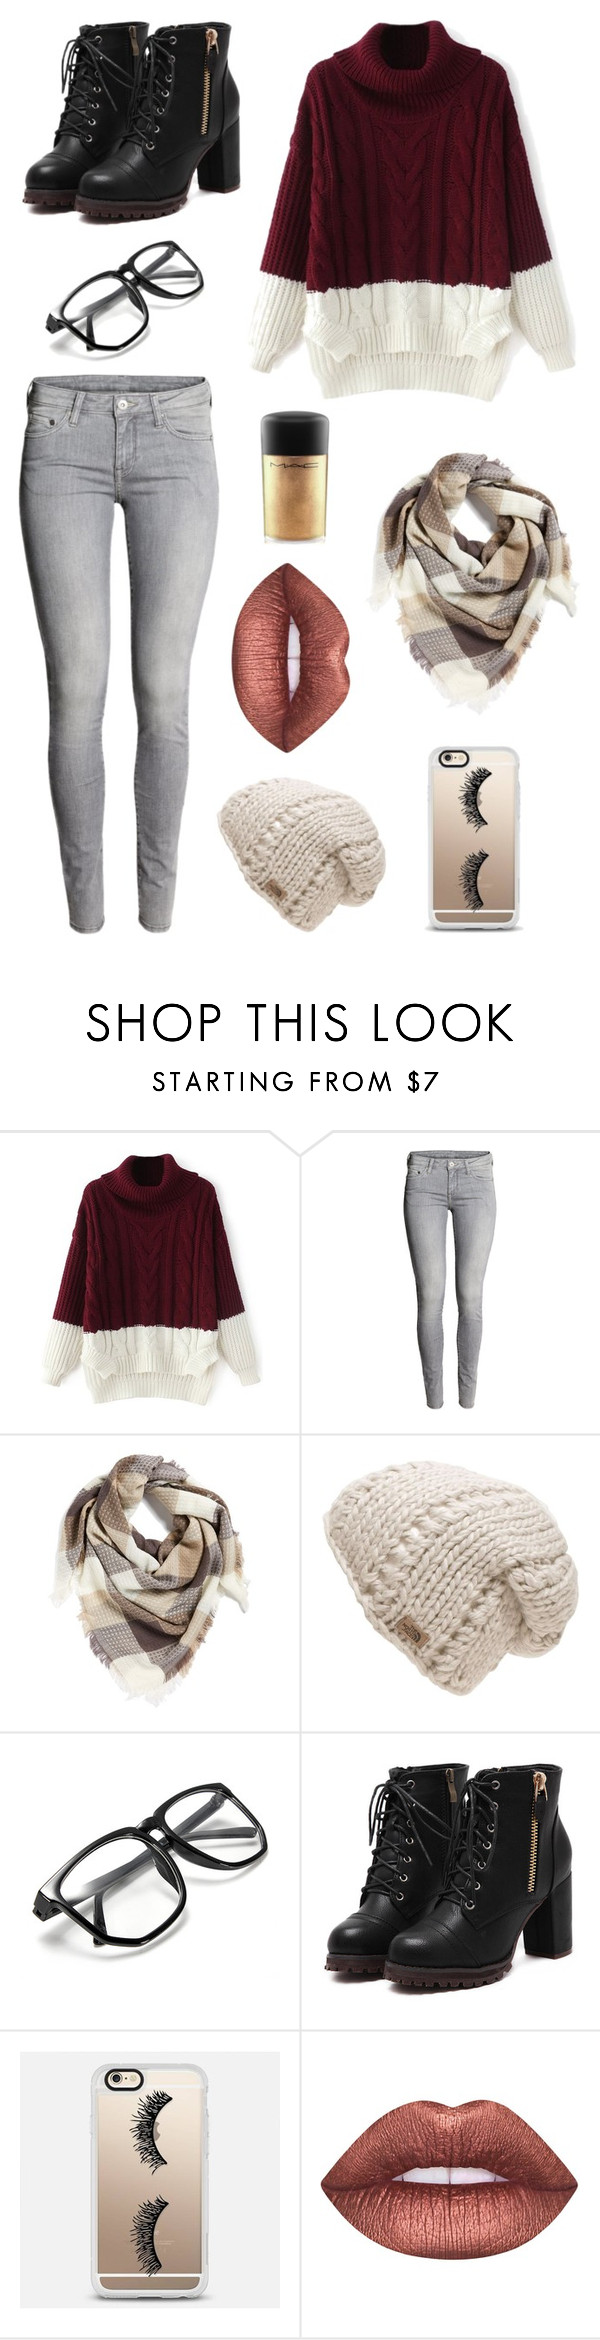 """Untitled #5"" by songird on Polyvore featuring H&M, BP., The North Face, Casetify, Lime Crime and MAC Cosmetics"